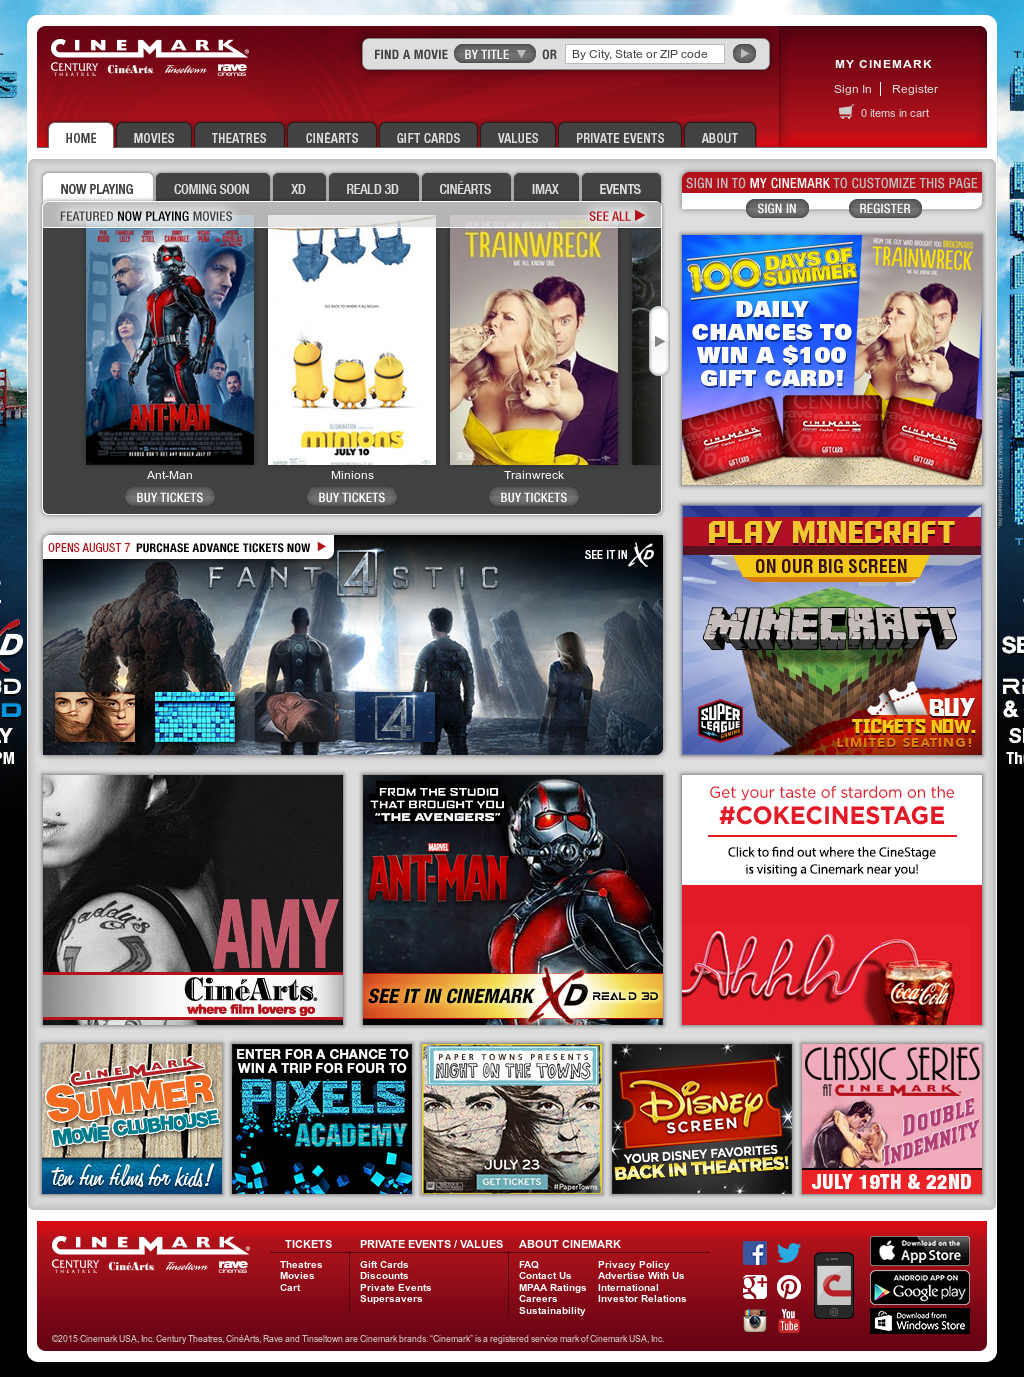 Cinemark Competitors, Revenue and Employees - Owler Company Profile